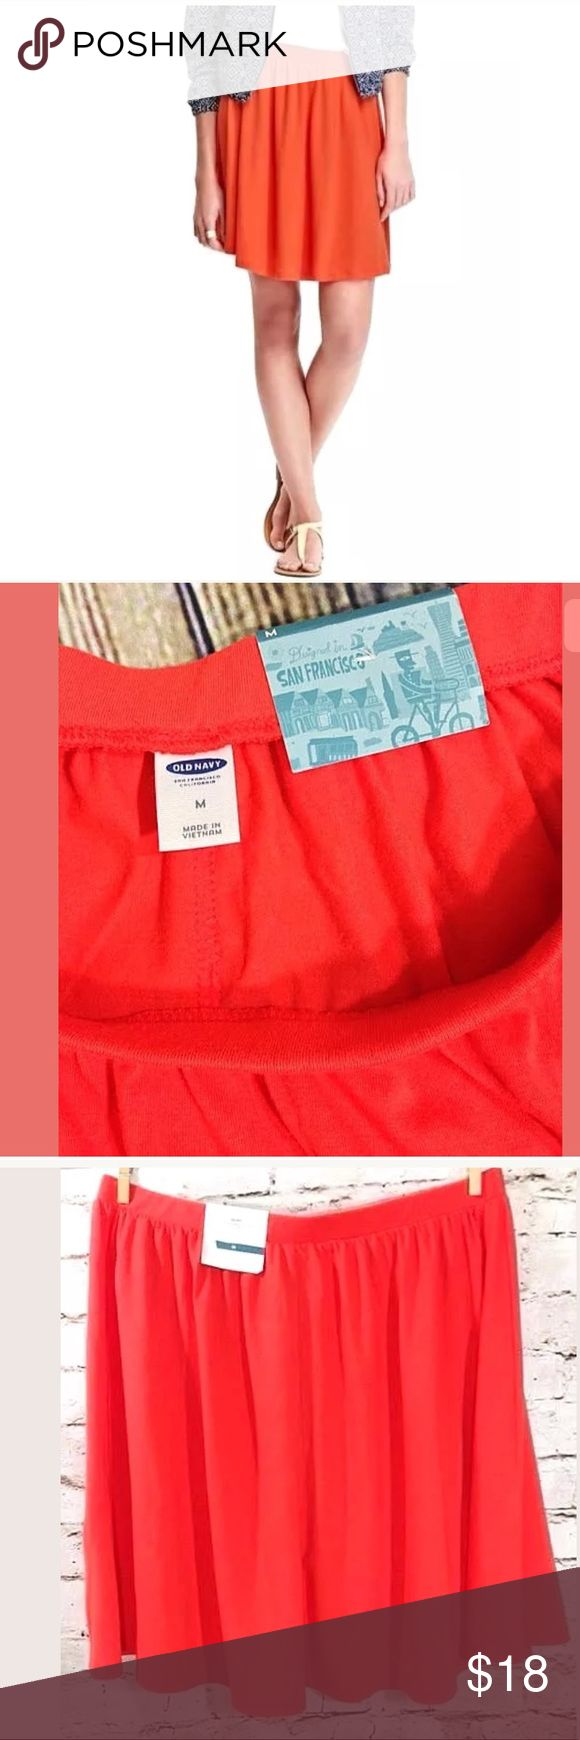 """New Old Navy Orange Skirt Jersey Knit Sz Medium NWT Old Navy Skirt  Women's Size Medium 62% Polyester / 34% Rayon / 4% Spandex New with partial tags attached Above knee style San Francisco Jupe Skirt Solid orange color  Stretch jersey knit fabric Waist= 30"""" (unstretched) Length = 17""""  Thank You For Your Business! Old Navy Skirts"""